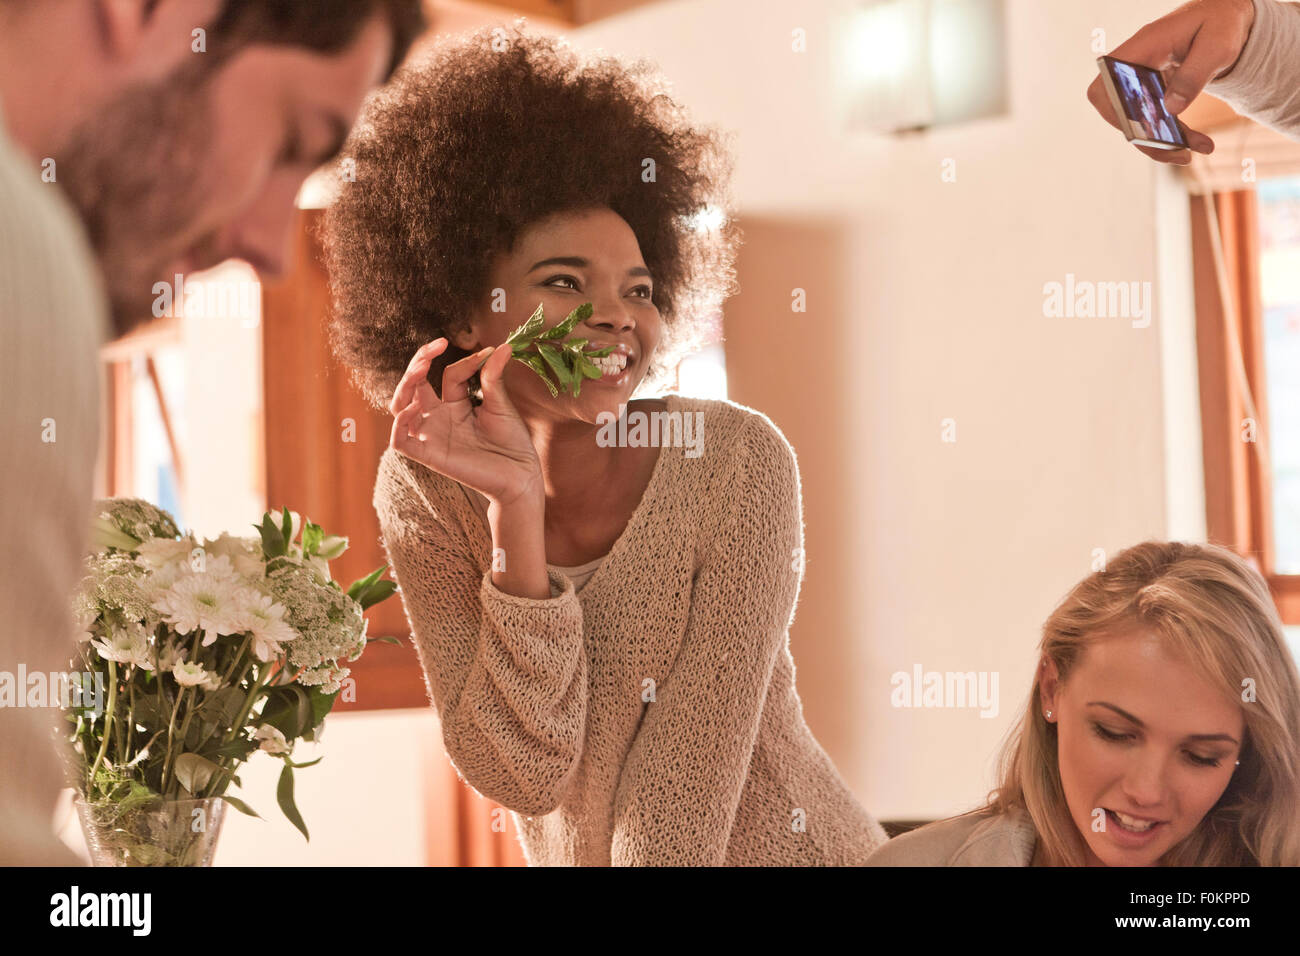 Young woman posing with leaf from bunch of flowers for a photo - Stock Image